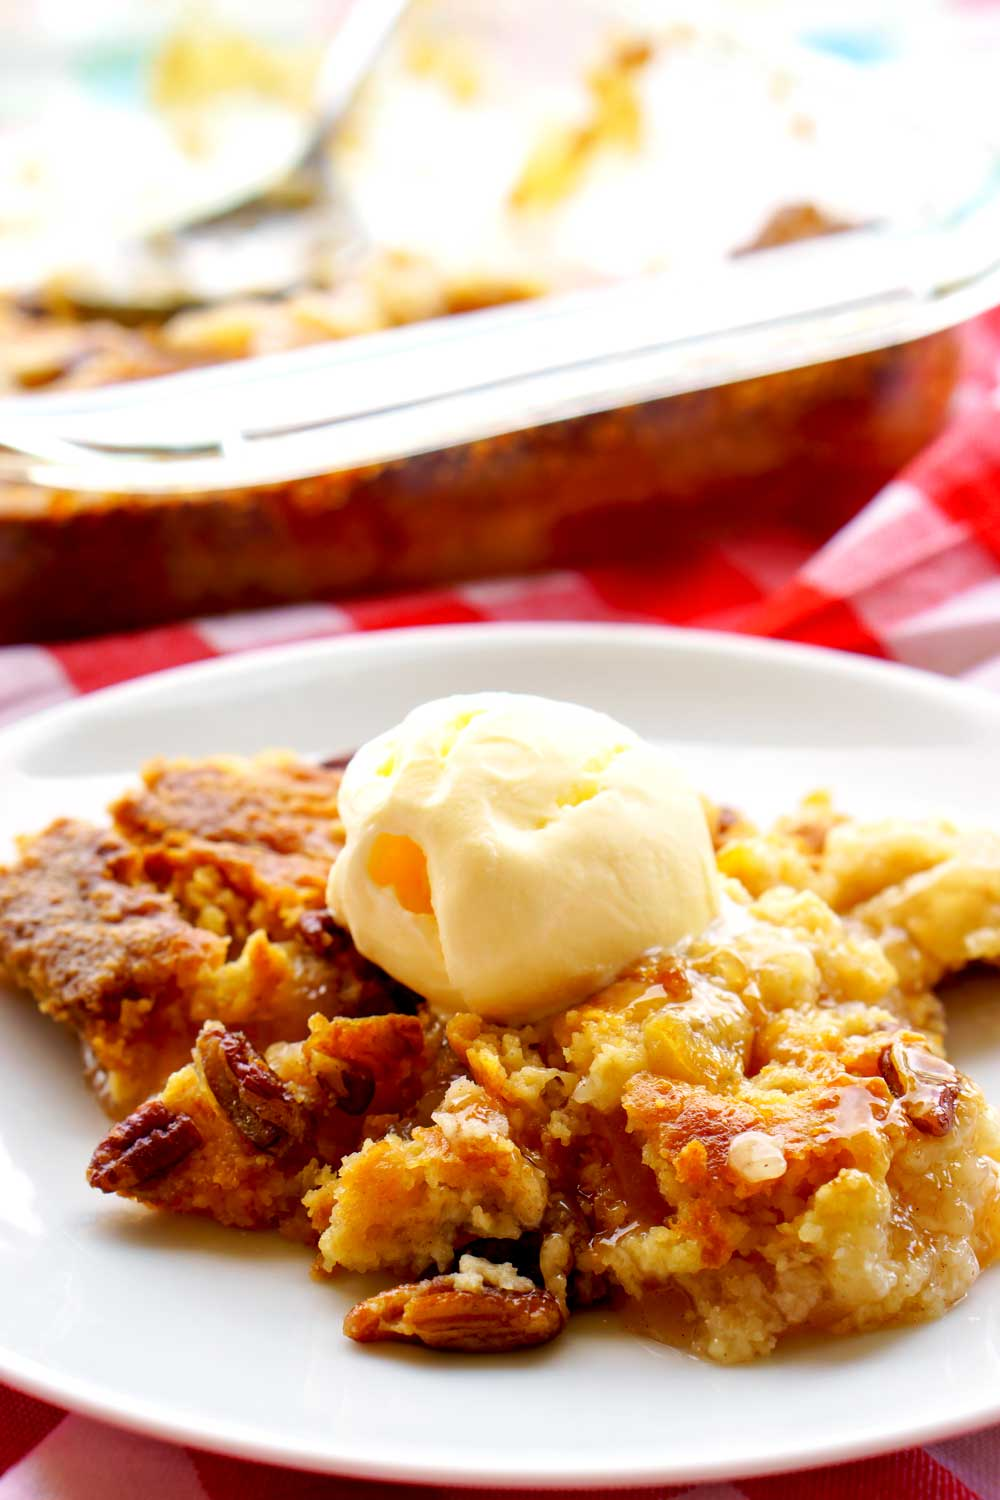 A dump cake is one of the simplest desserts you can make. They're usually made with a base of canned pie filling, a layer of dry cake mix, and pads of butter on top. There is no stirring involved with dump cakes, and true to their name, you just dump the ingredients into the pan and that's it!